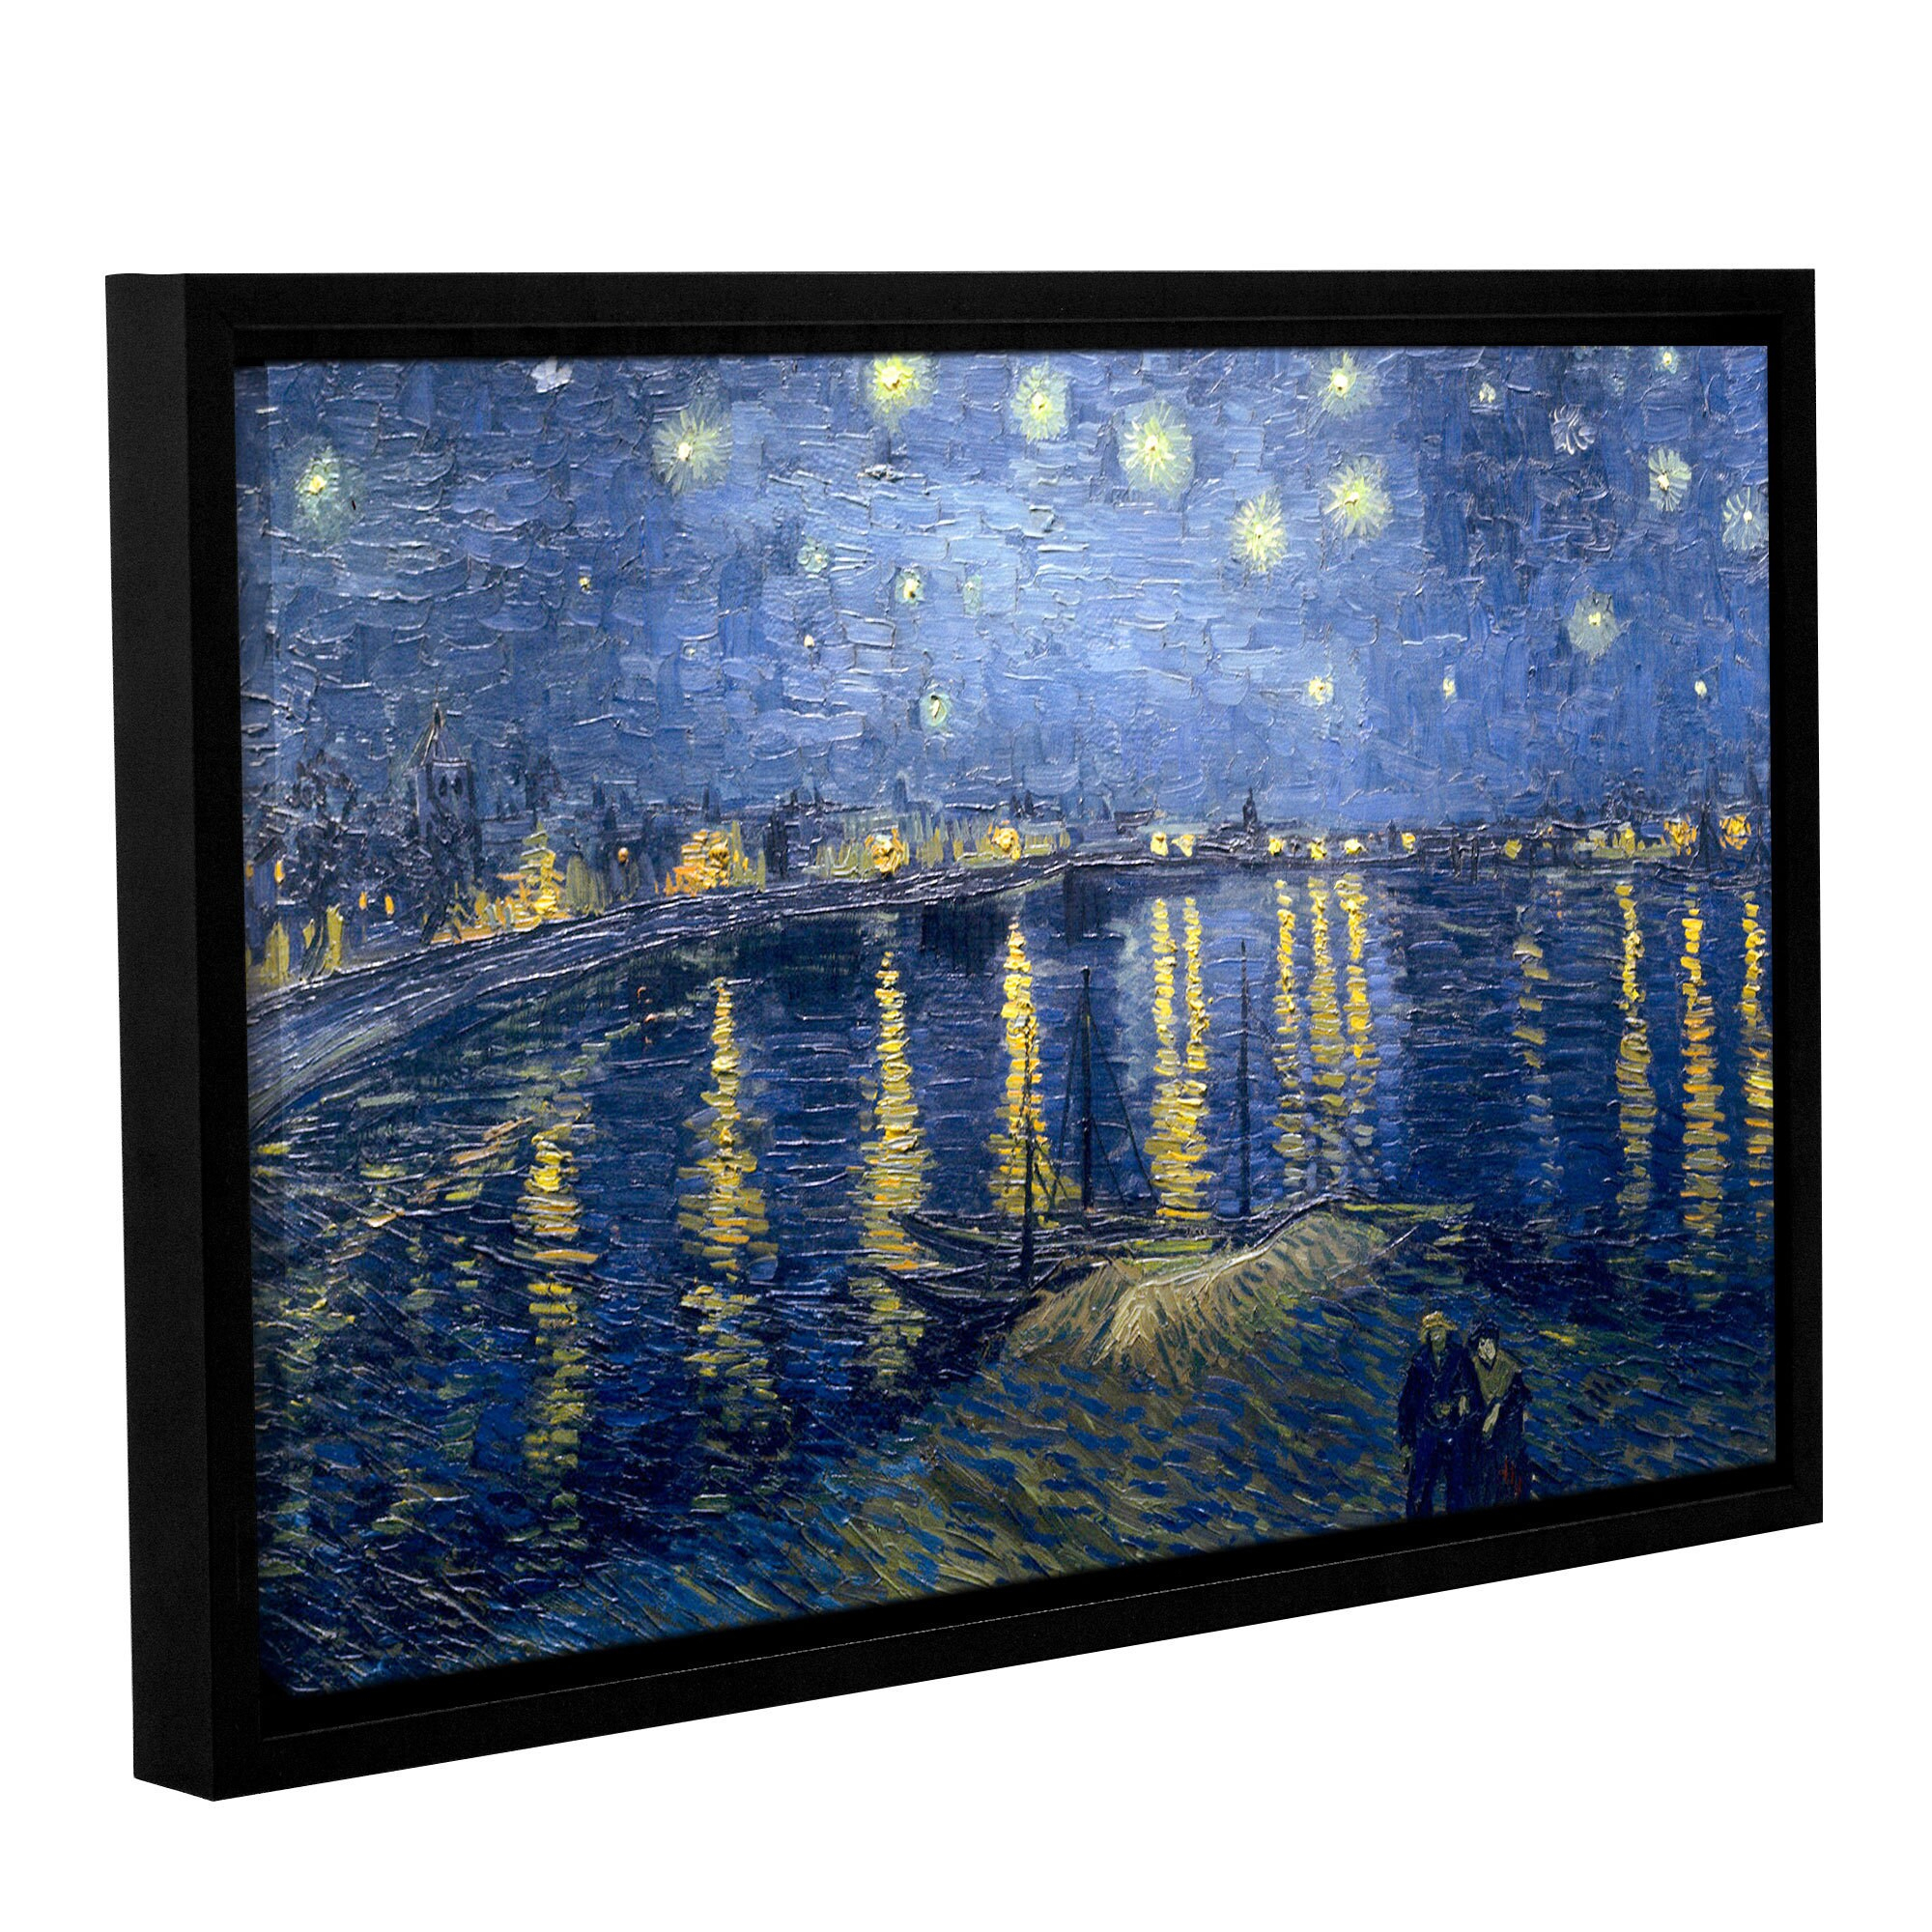 Artwall 'vincent Van Gogh's Starry Night Over The Rhone Intended For Most Recently Released Blended Fabric Van Gogh Starry Night Over The Rhone Wall Hangings (View 2 of 20)